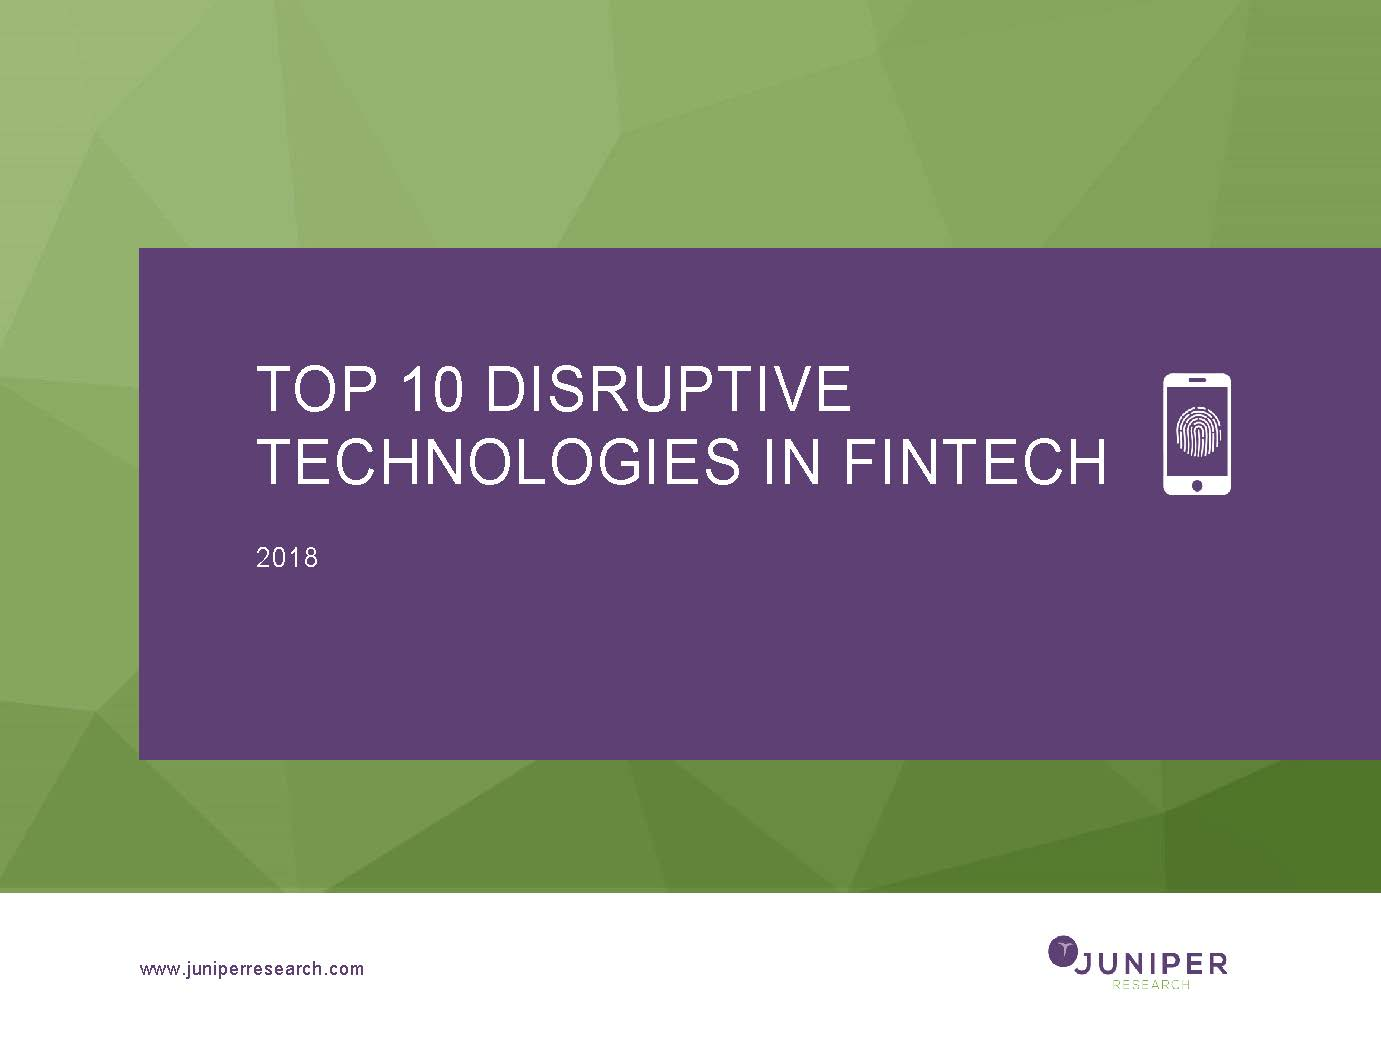 Top Payments 10 Disruptive Technologies in Fintech Report Fintech  Payments Top 1faef9